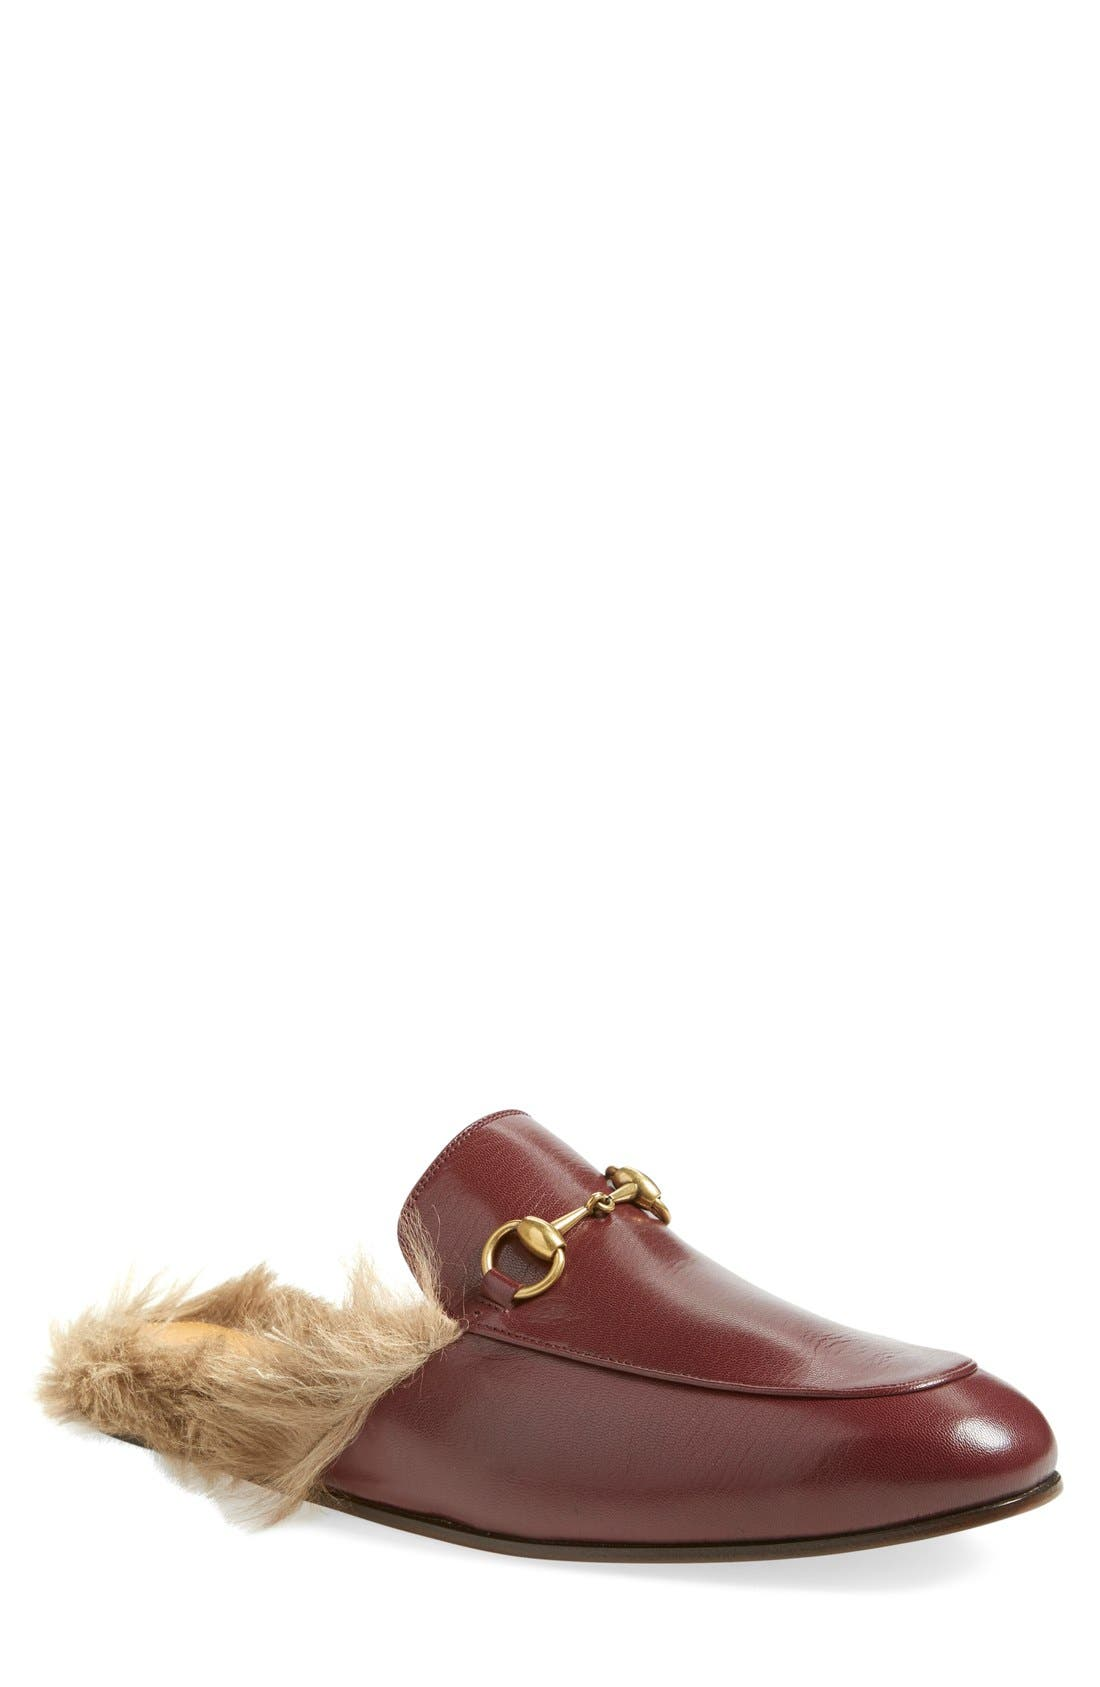 Princetown Genuine Shearling Lined Mule Loafer,                         Main,                         color, Red/ Tea Leather